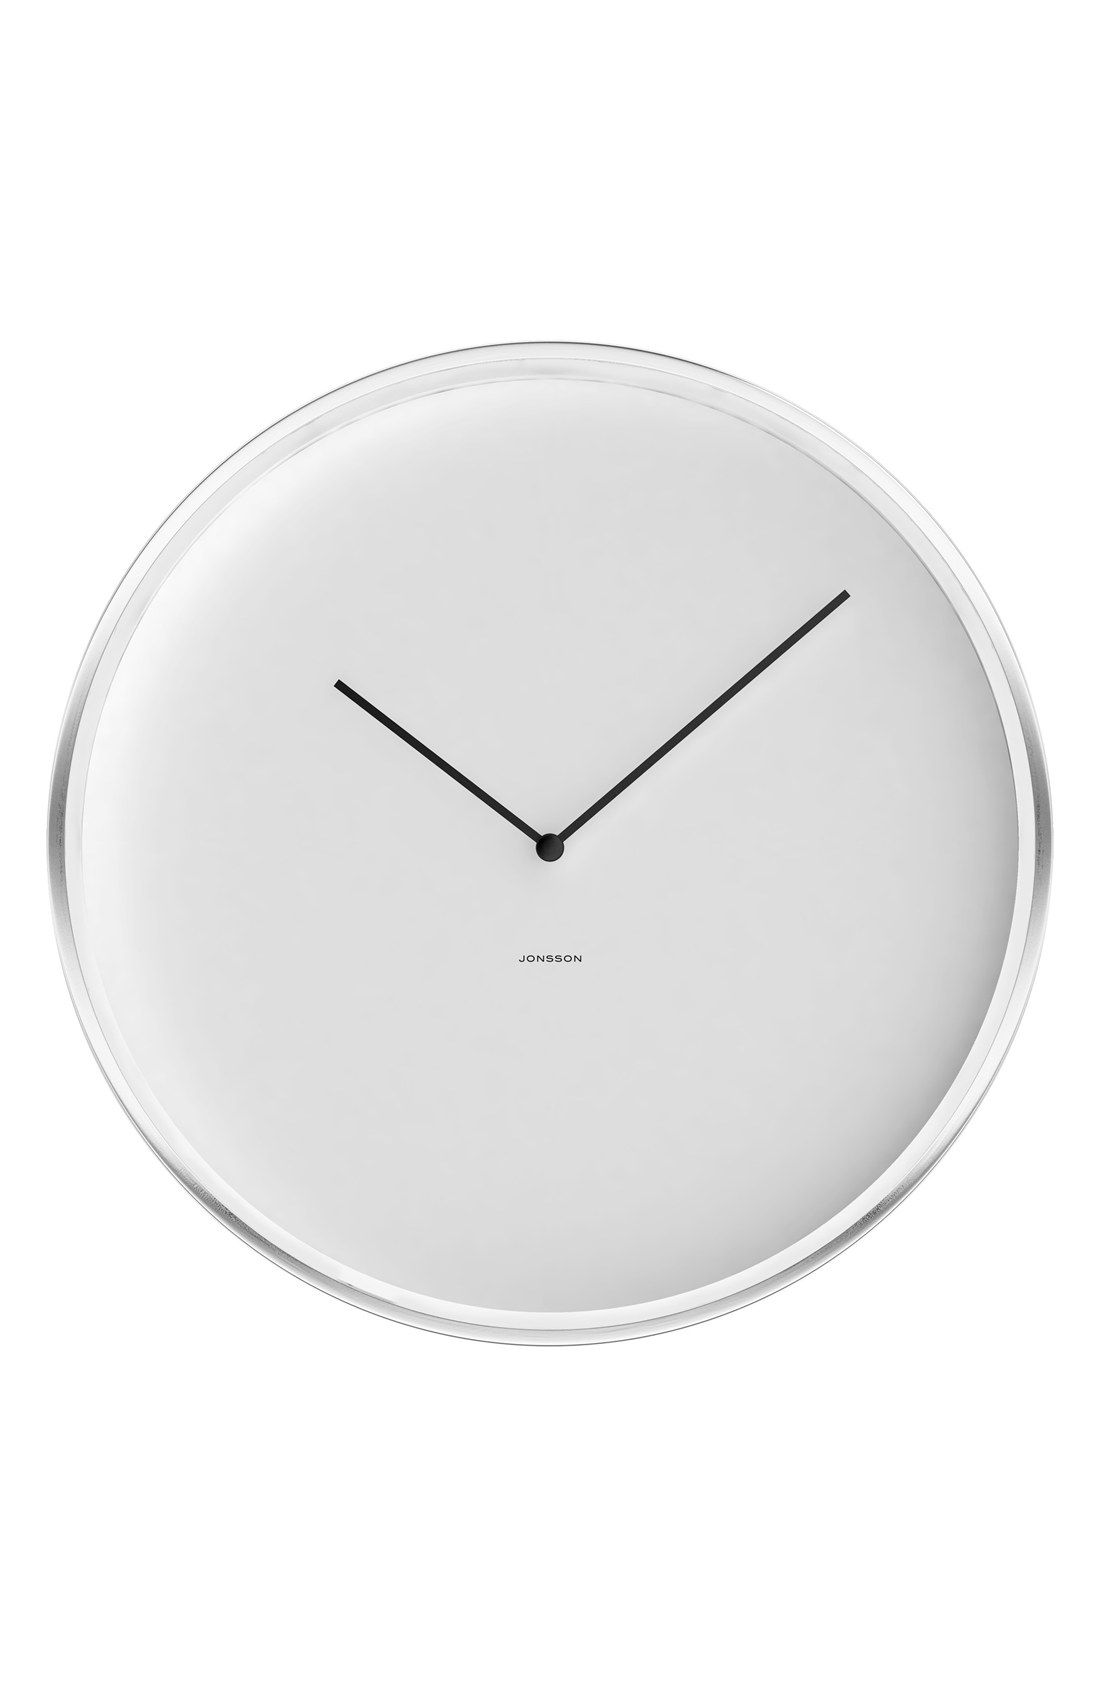 Bathroom Wall Clocks: Jonsson Clocks Blank Wall Clock